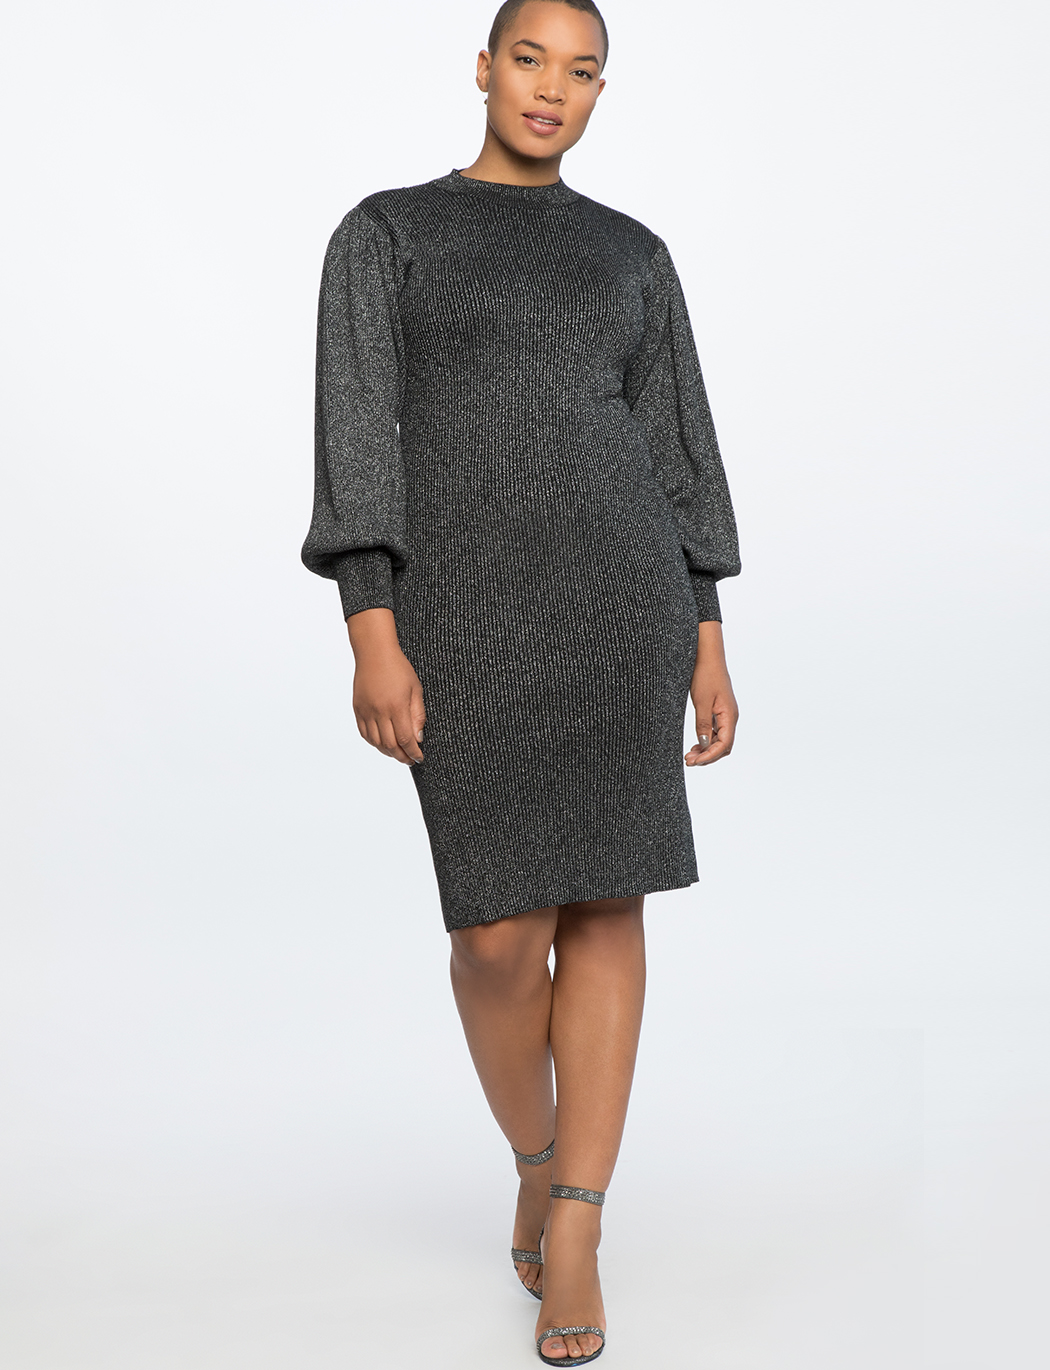 Puff Sleeve Metallic Dress